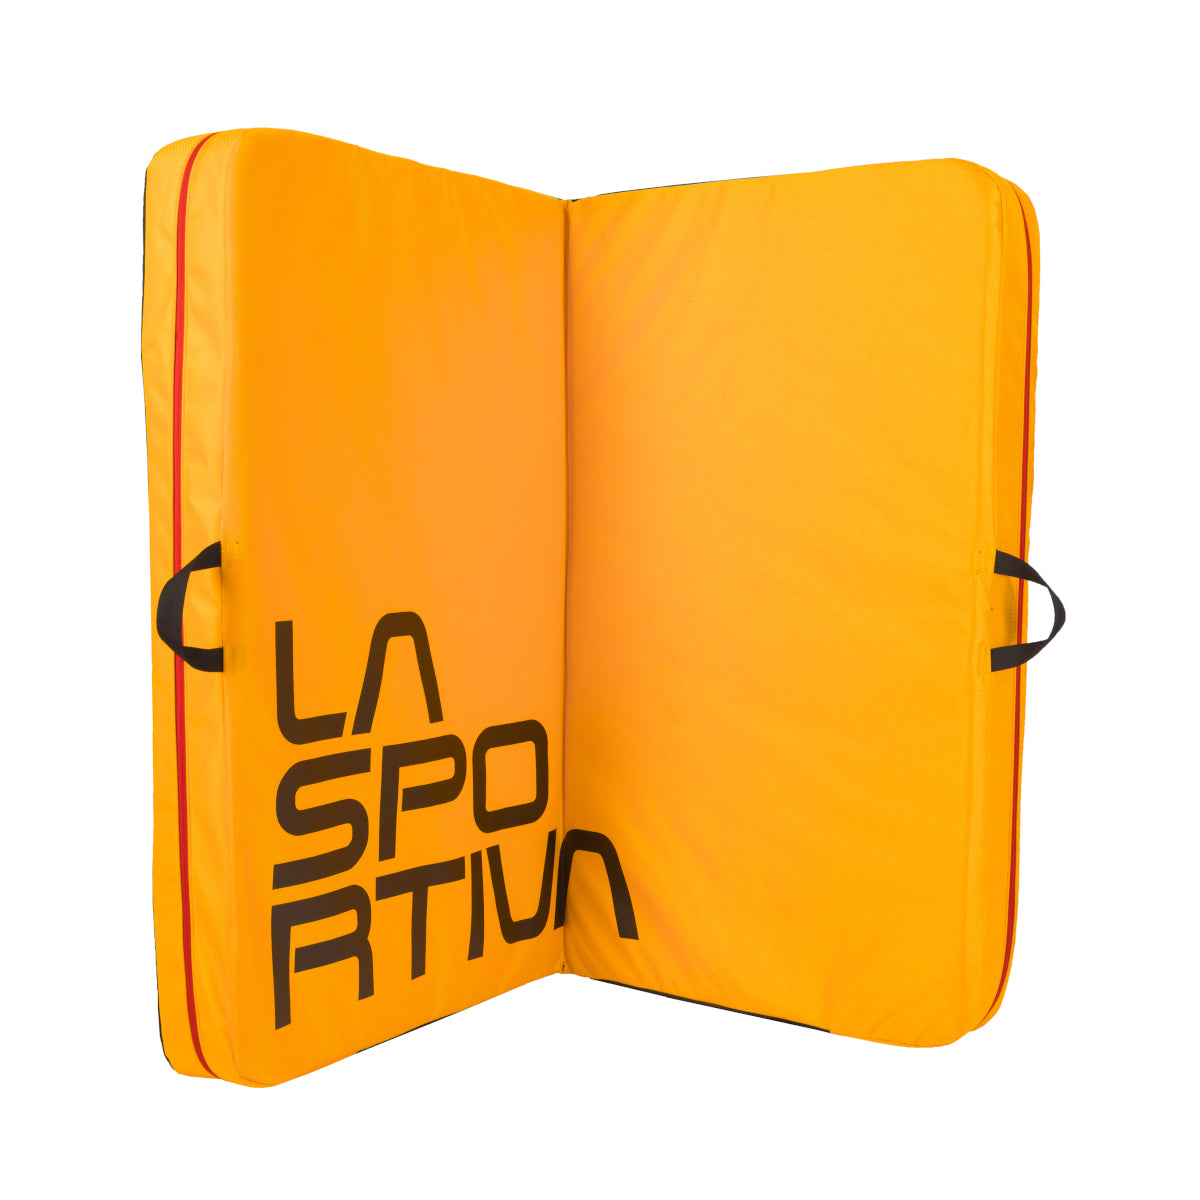 La Sportiva LaSpo Crash Pad shown opened out